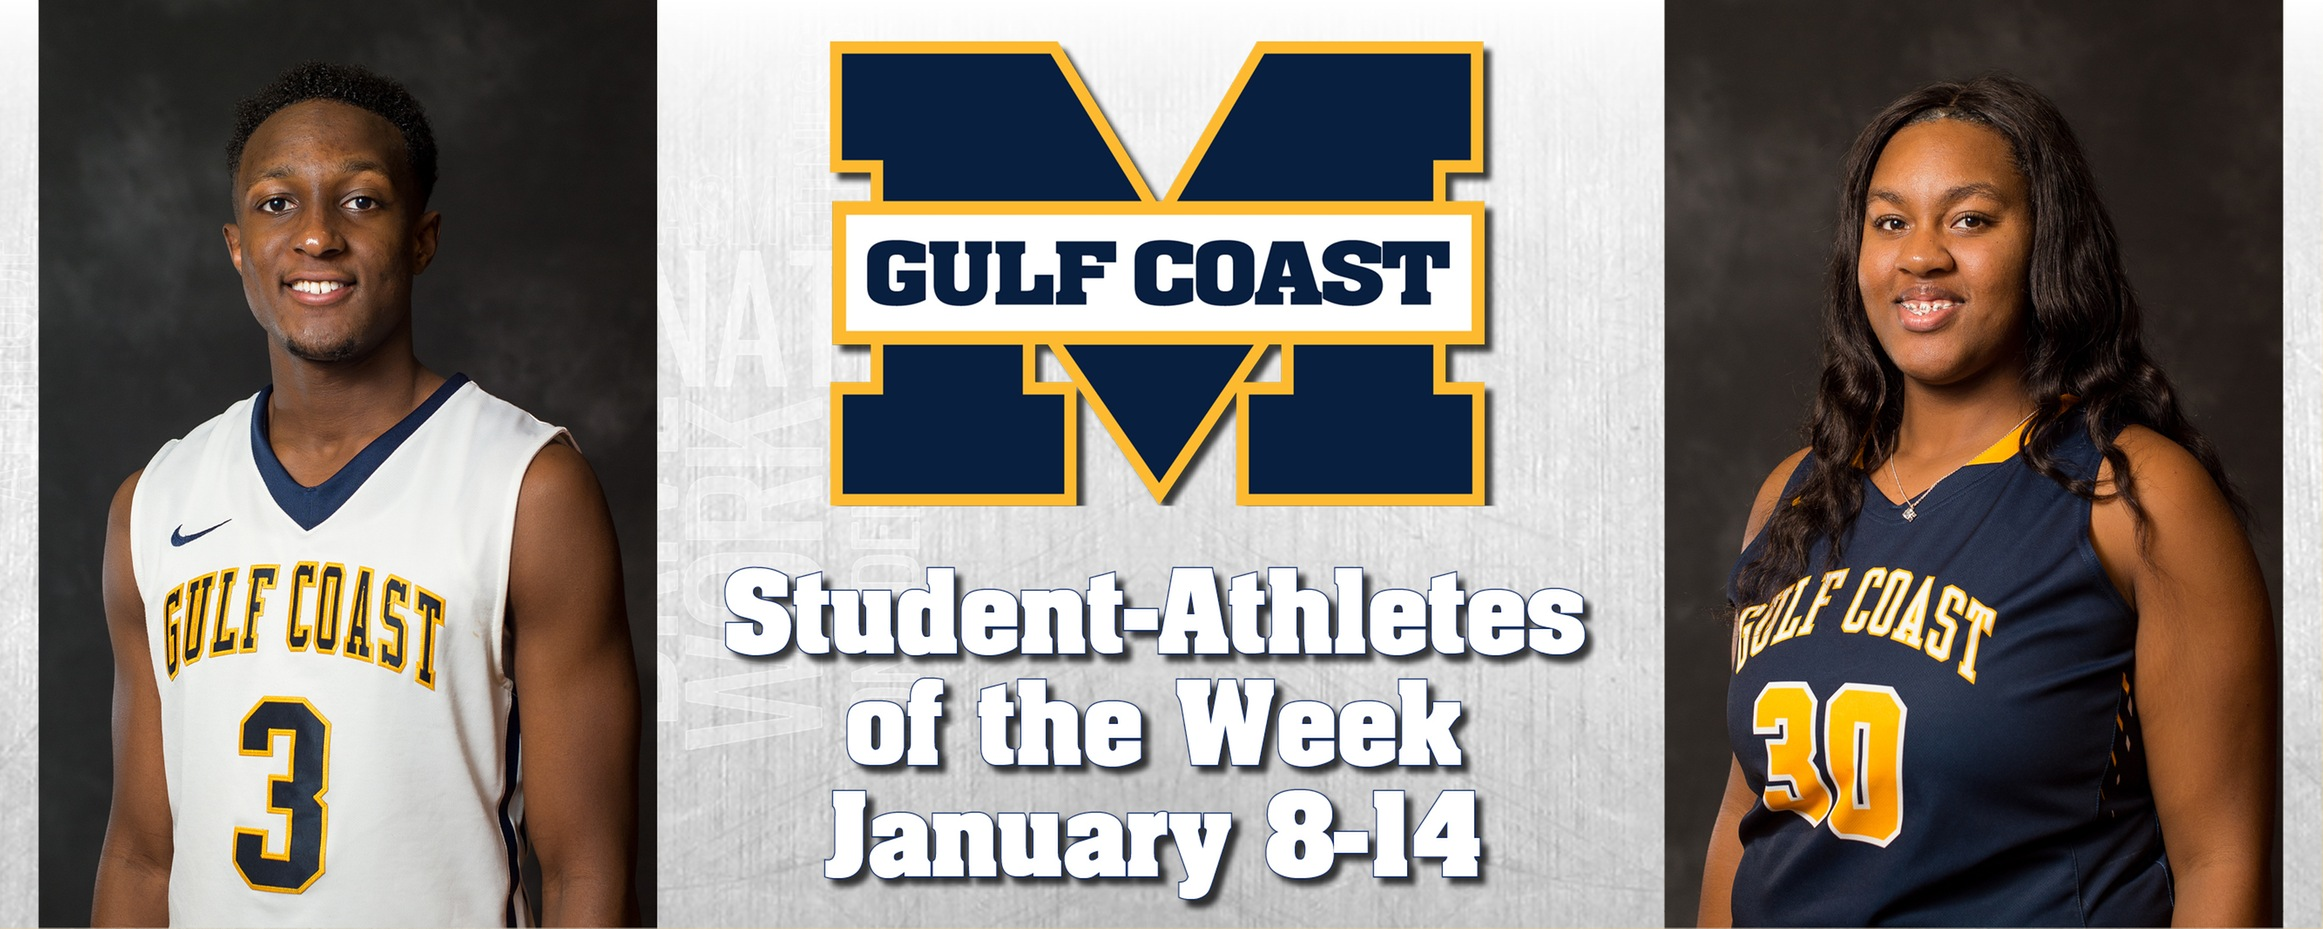 Dial, Howard named MGCCC Student-Athletes of the Week